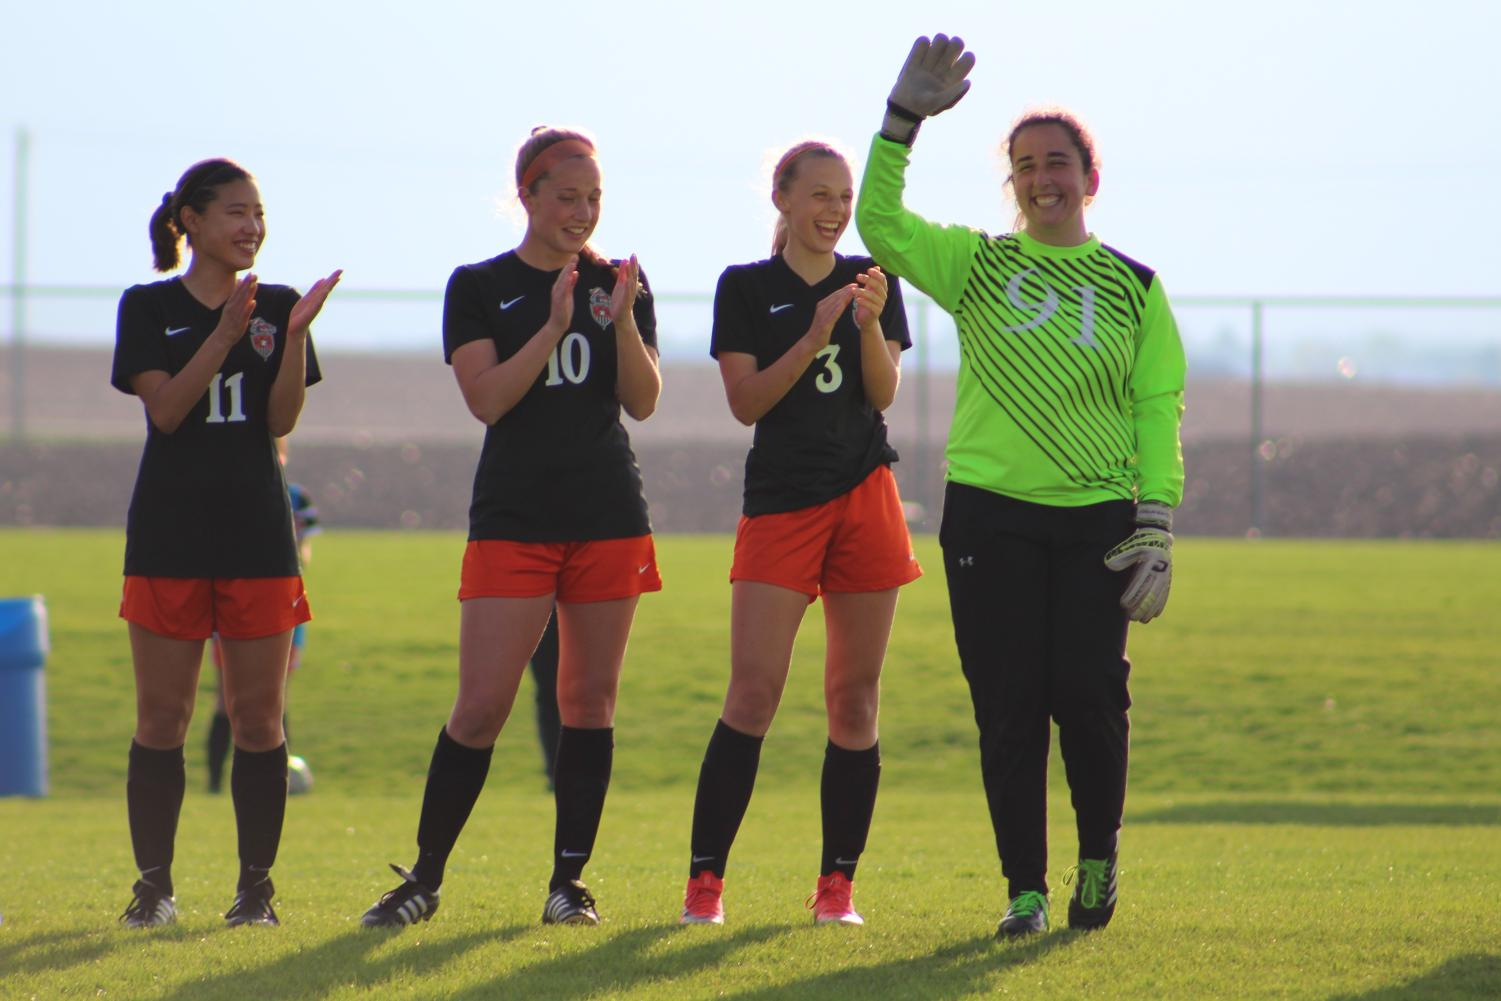 Goalkeeper+Savannah+Henson+waves+to+the+crowd+as+her+name+is+announced.+Henson+plans+on+attending+Illinois+college.